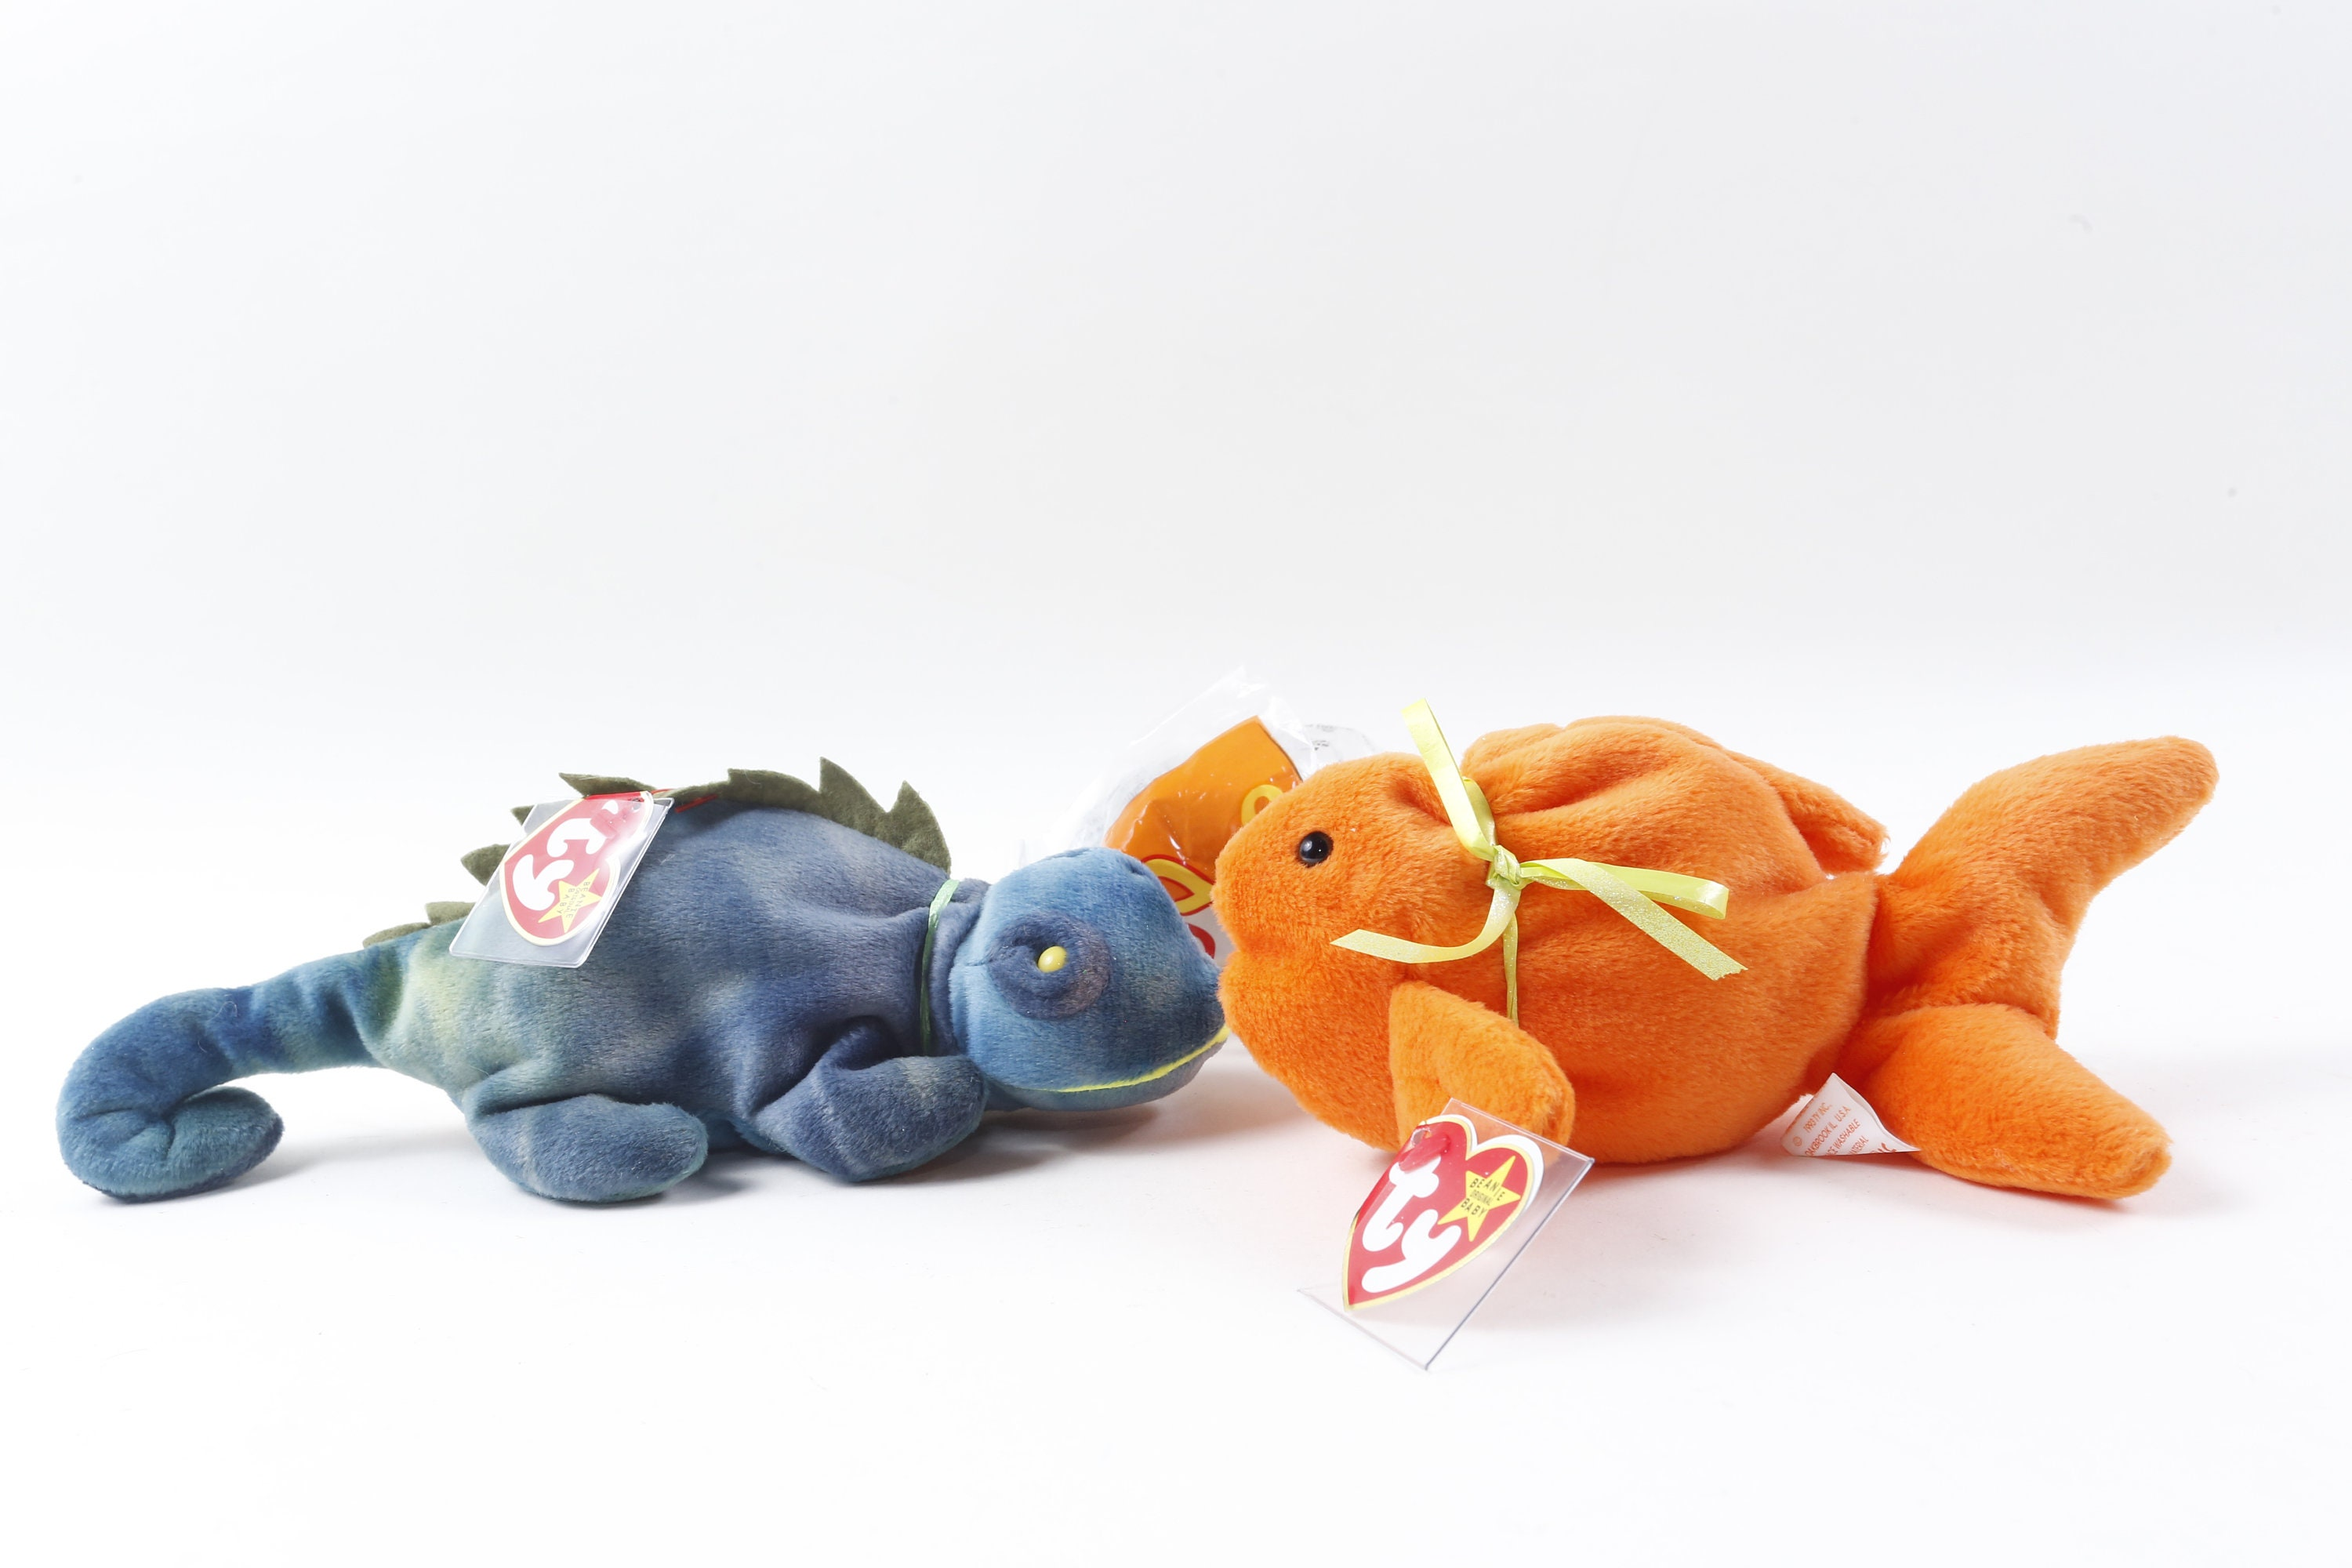 ce238ce8ac3 Vintage beanie baby lizard fish soft plush toy animal etsy jpg 3000x2000 Lizard  beanie baby